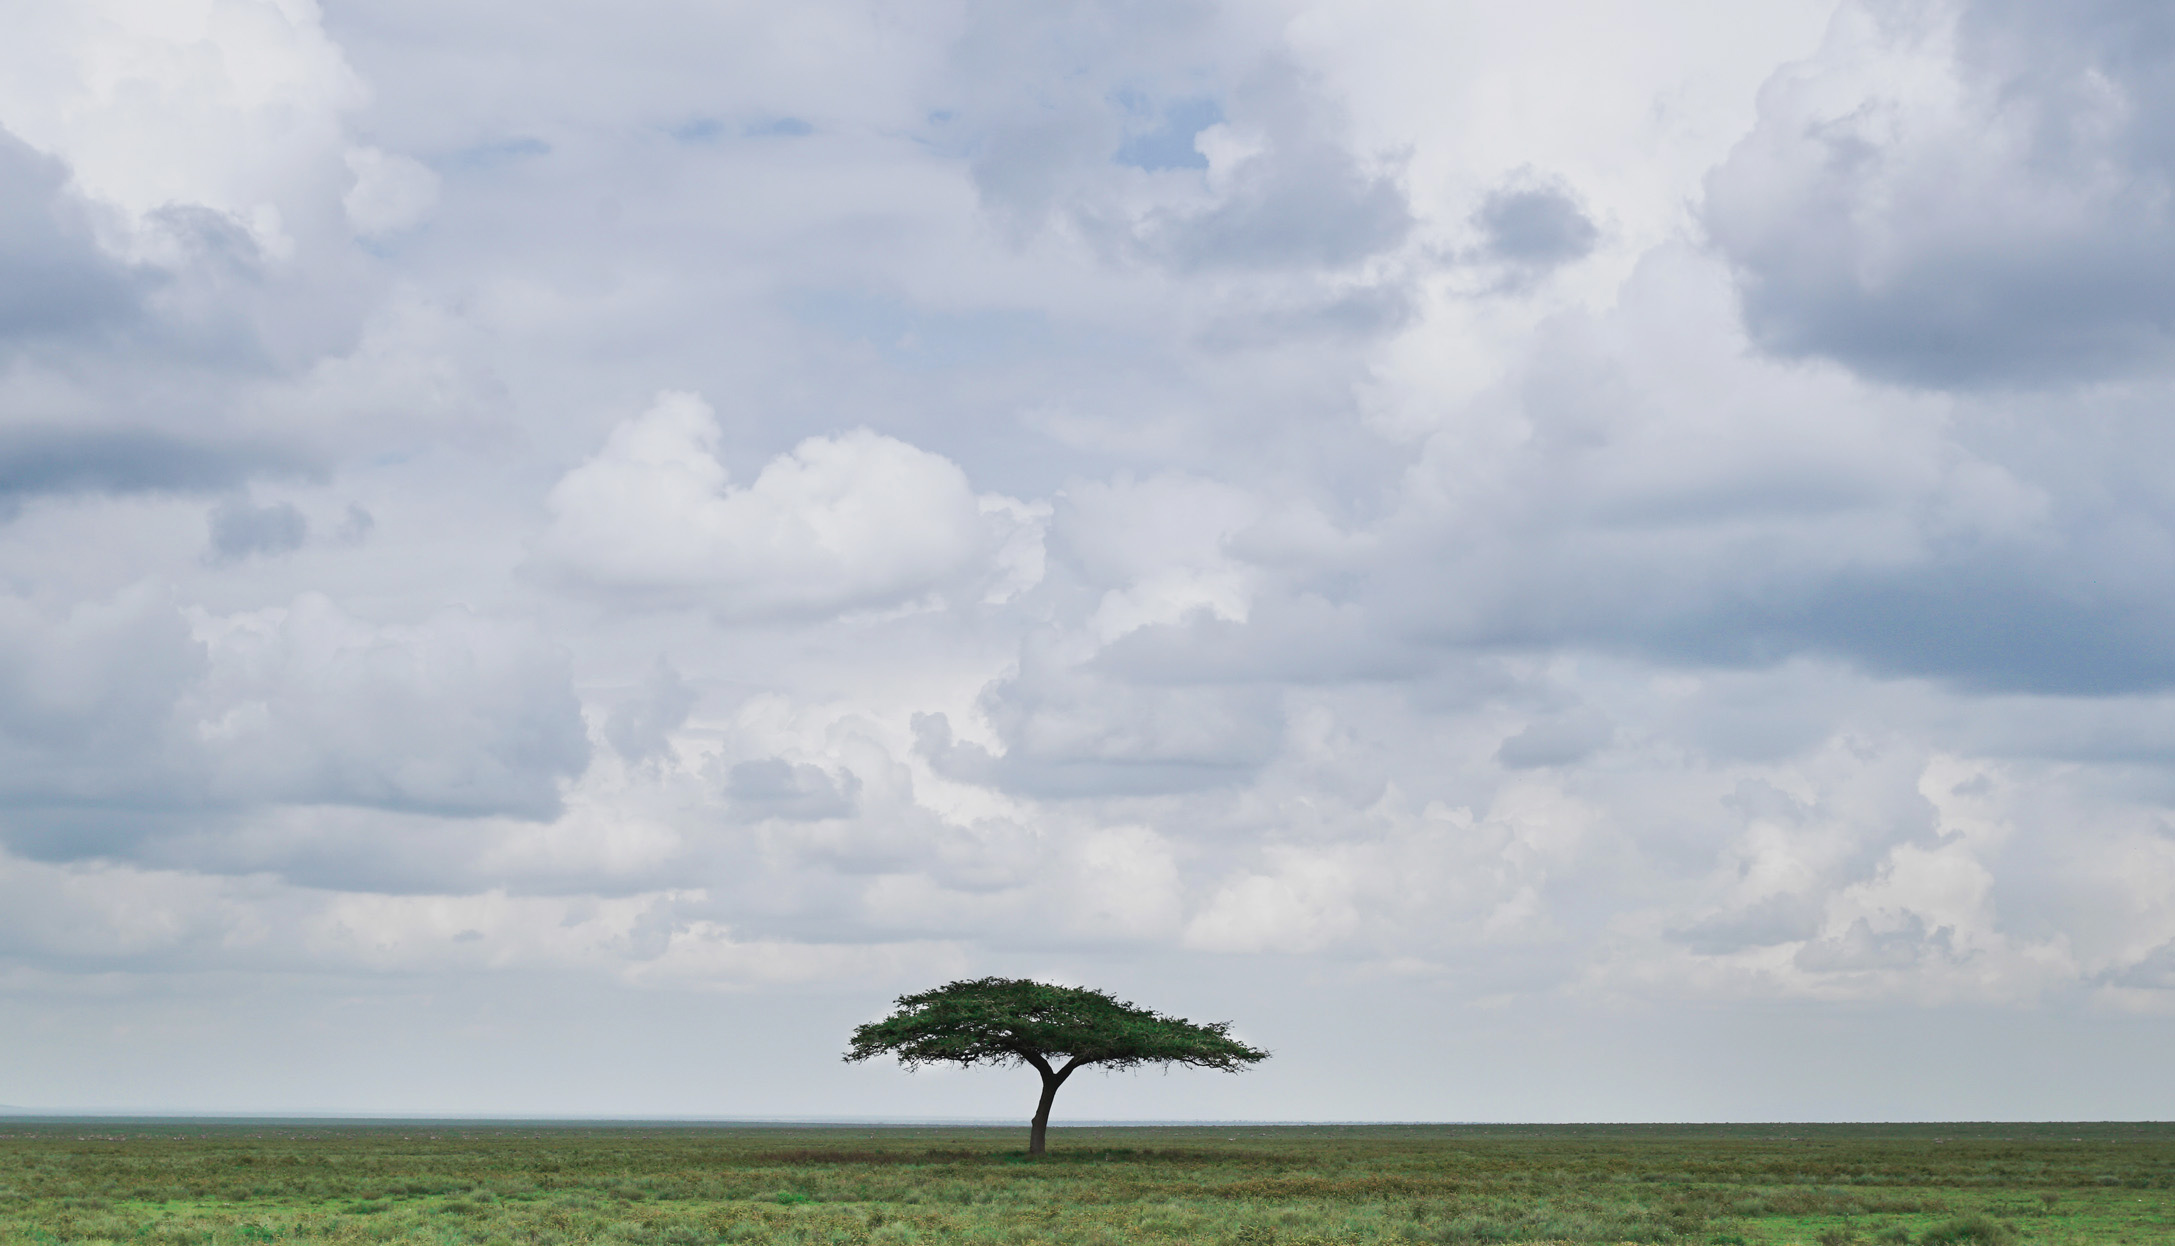 Tanzania, Africa landscape with a Solitary Tree in the middle of the Serengeti